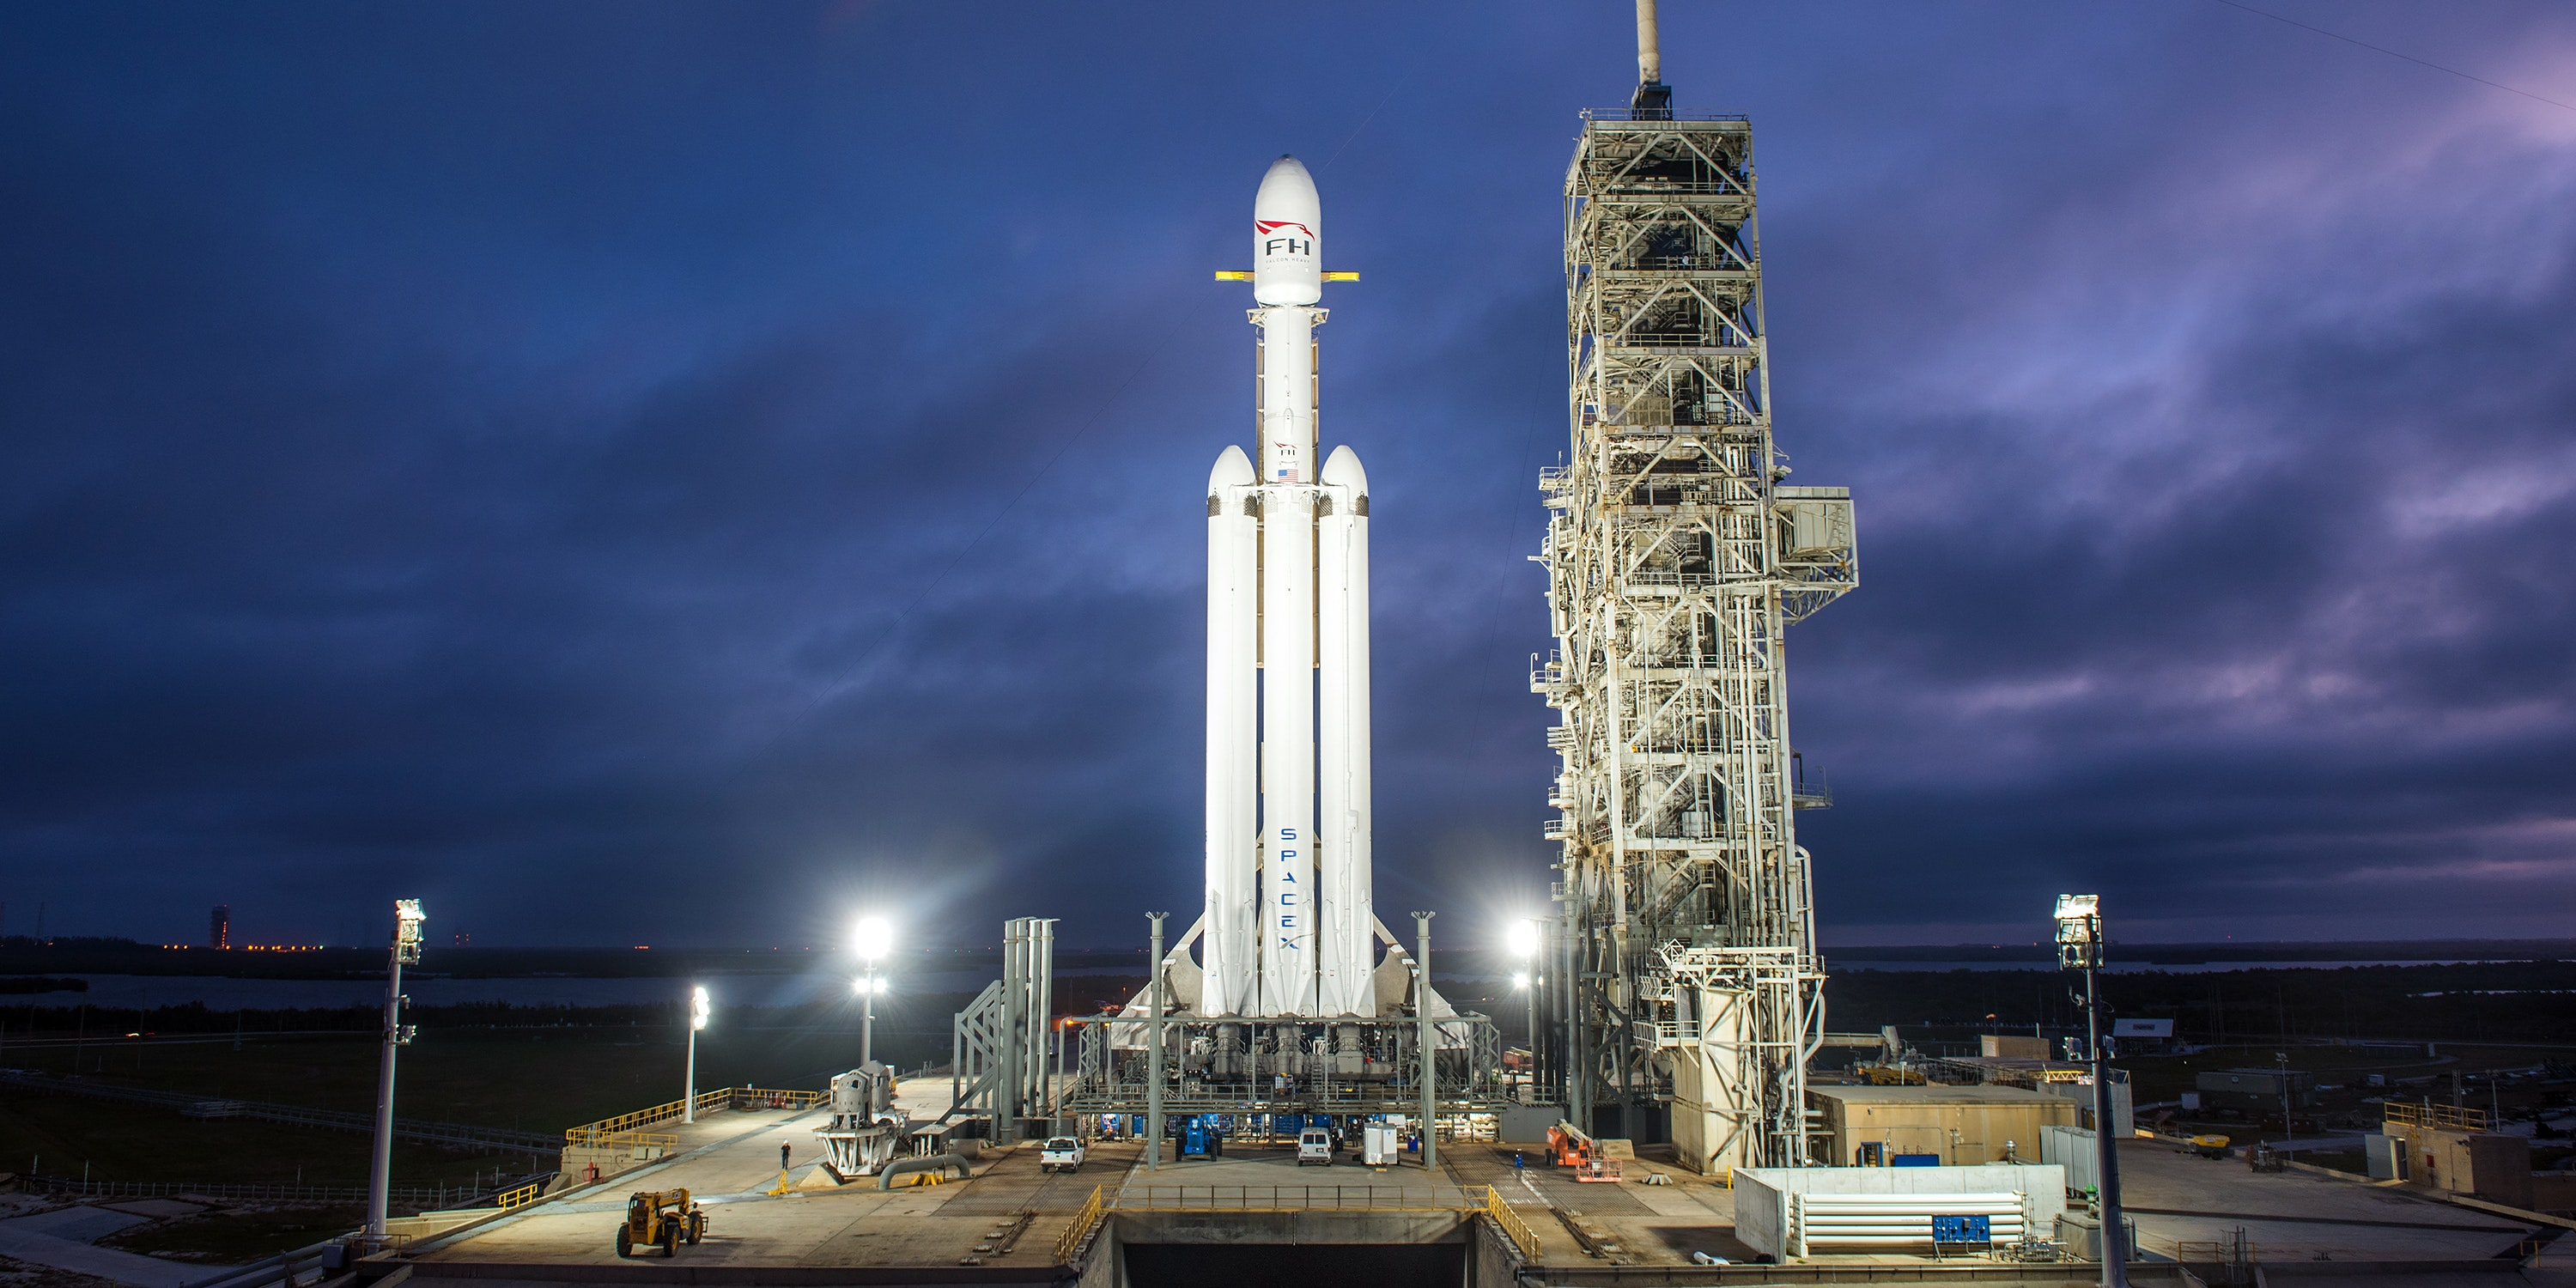 Falcon Heavy: Arabsat 6A Launch Date, SpaceX Preparations, and Stakes